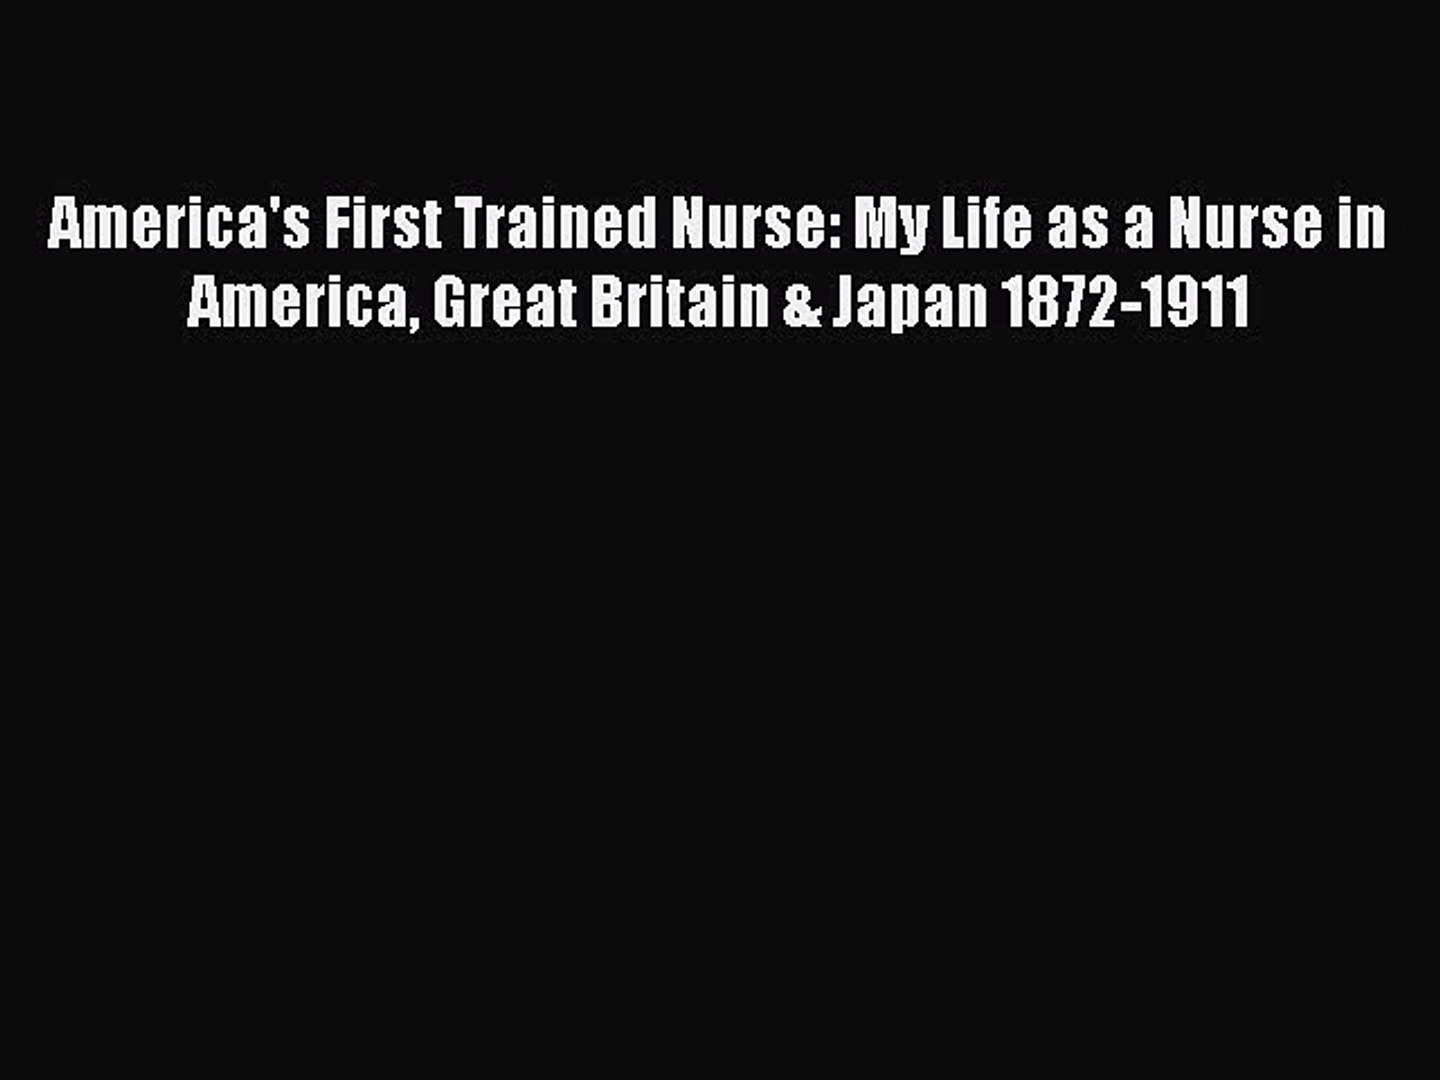 Read America's First Trained Nurse: My Life as a Nurse in America Great Britain & Japan 1872-1911